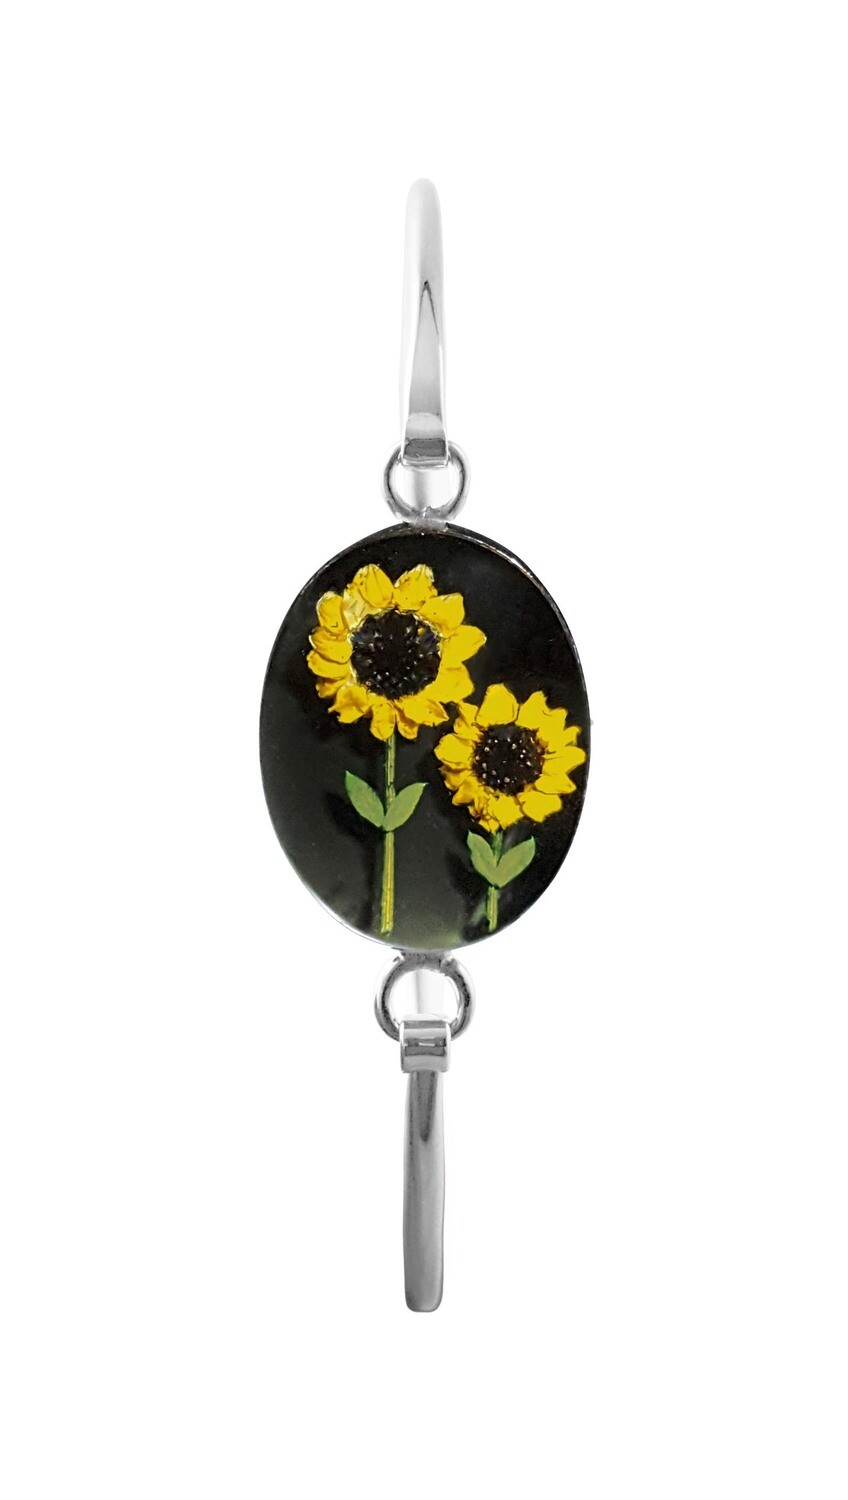 Sunflowers, Medium Oval Bracelet, Black Background.